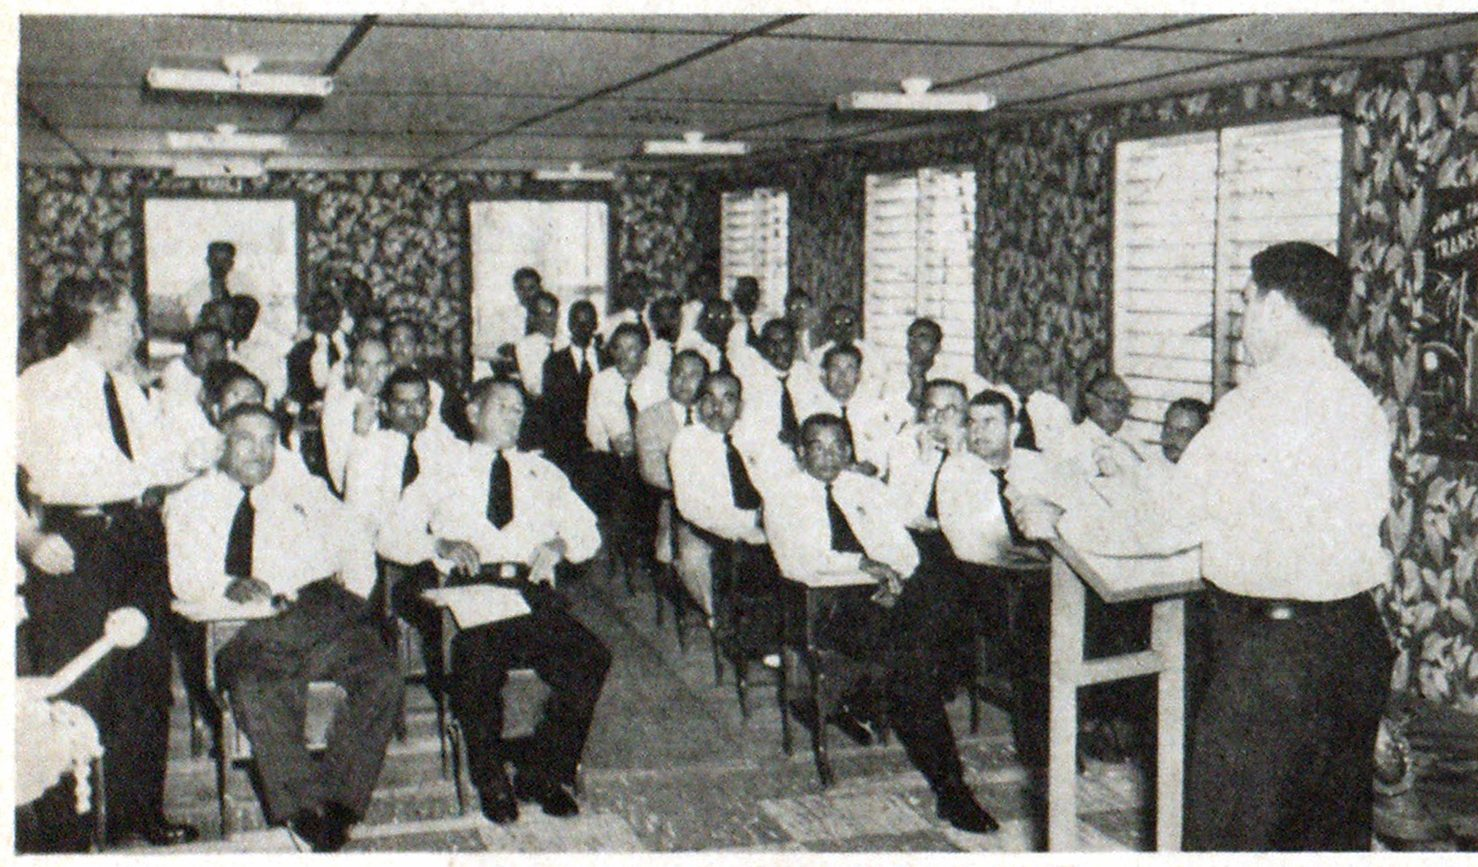 Class rooms at the Fire College are bright and airy, and well equipped. Here Chief Gándara is shown addressing a class of officers.